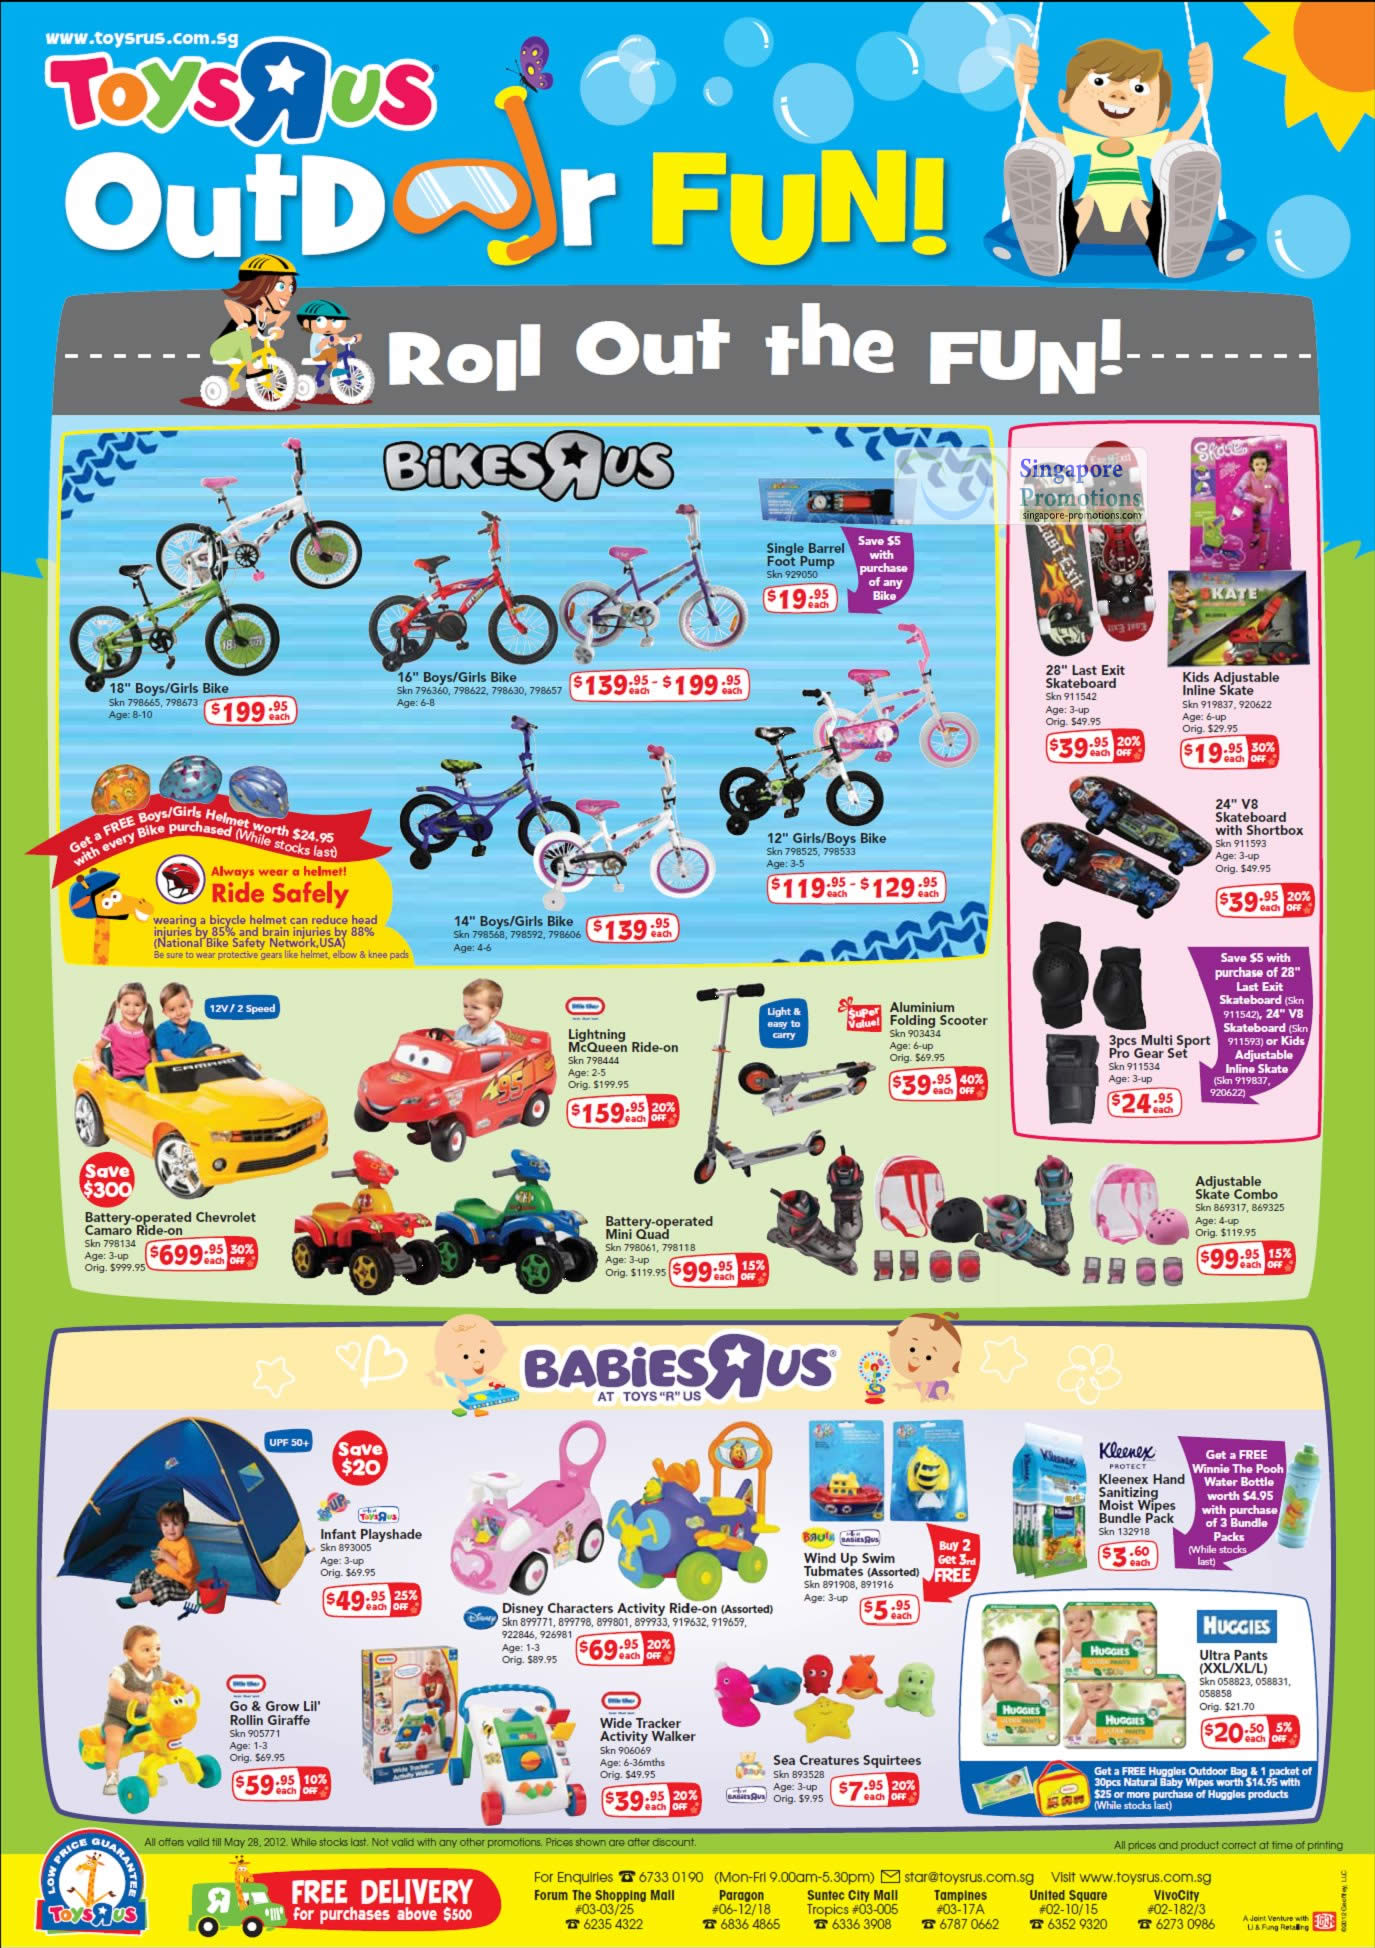 Toys R Us Babies R Us Outdoor Fun Offers Amp Promotions